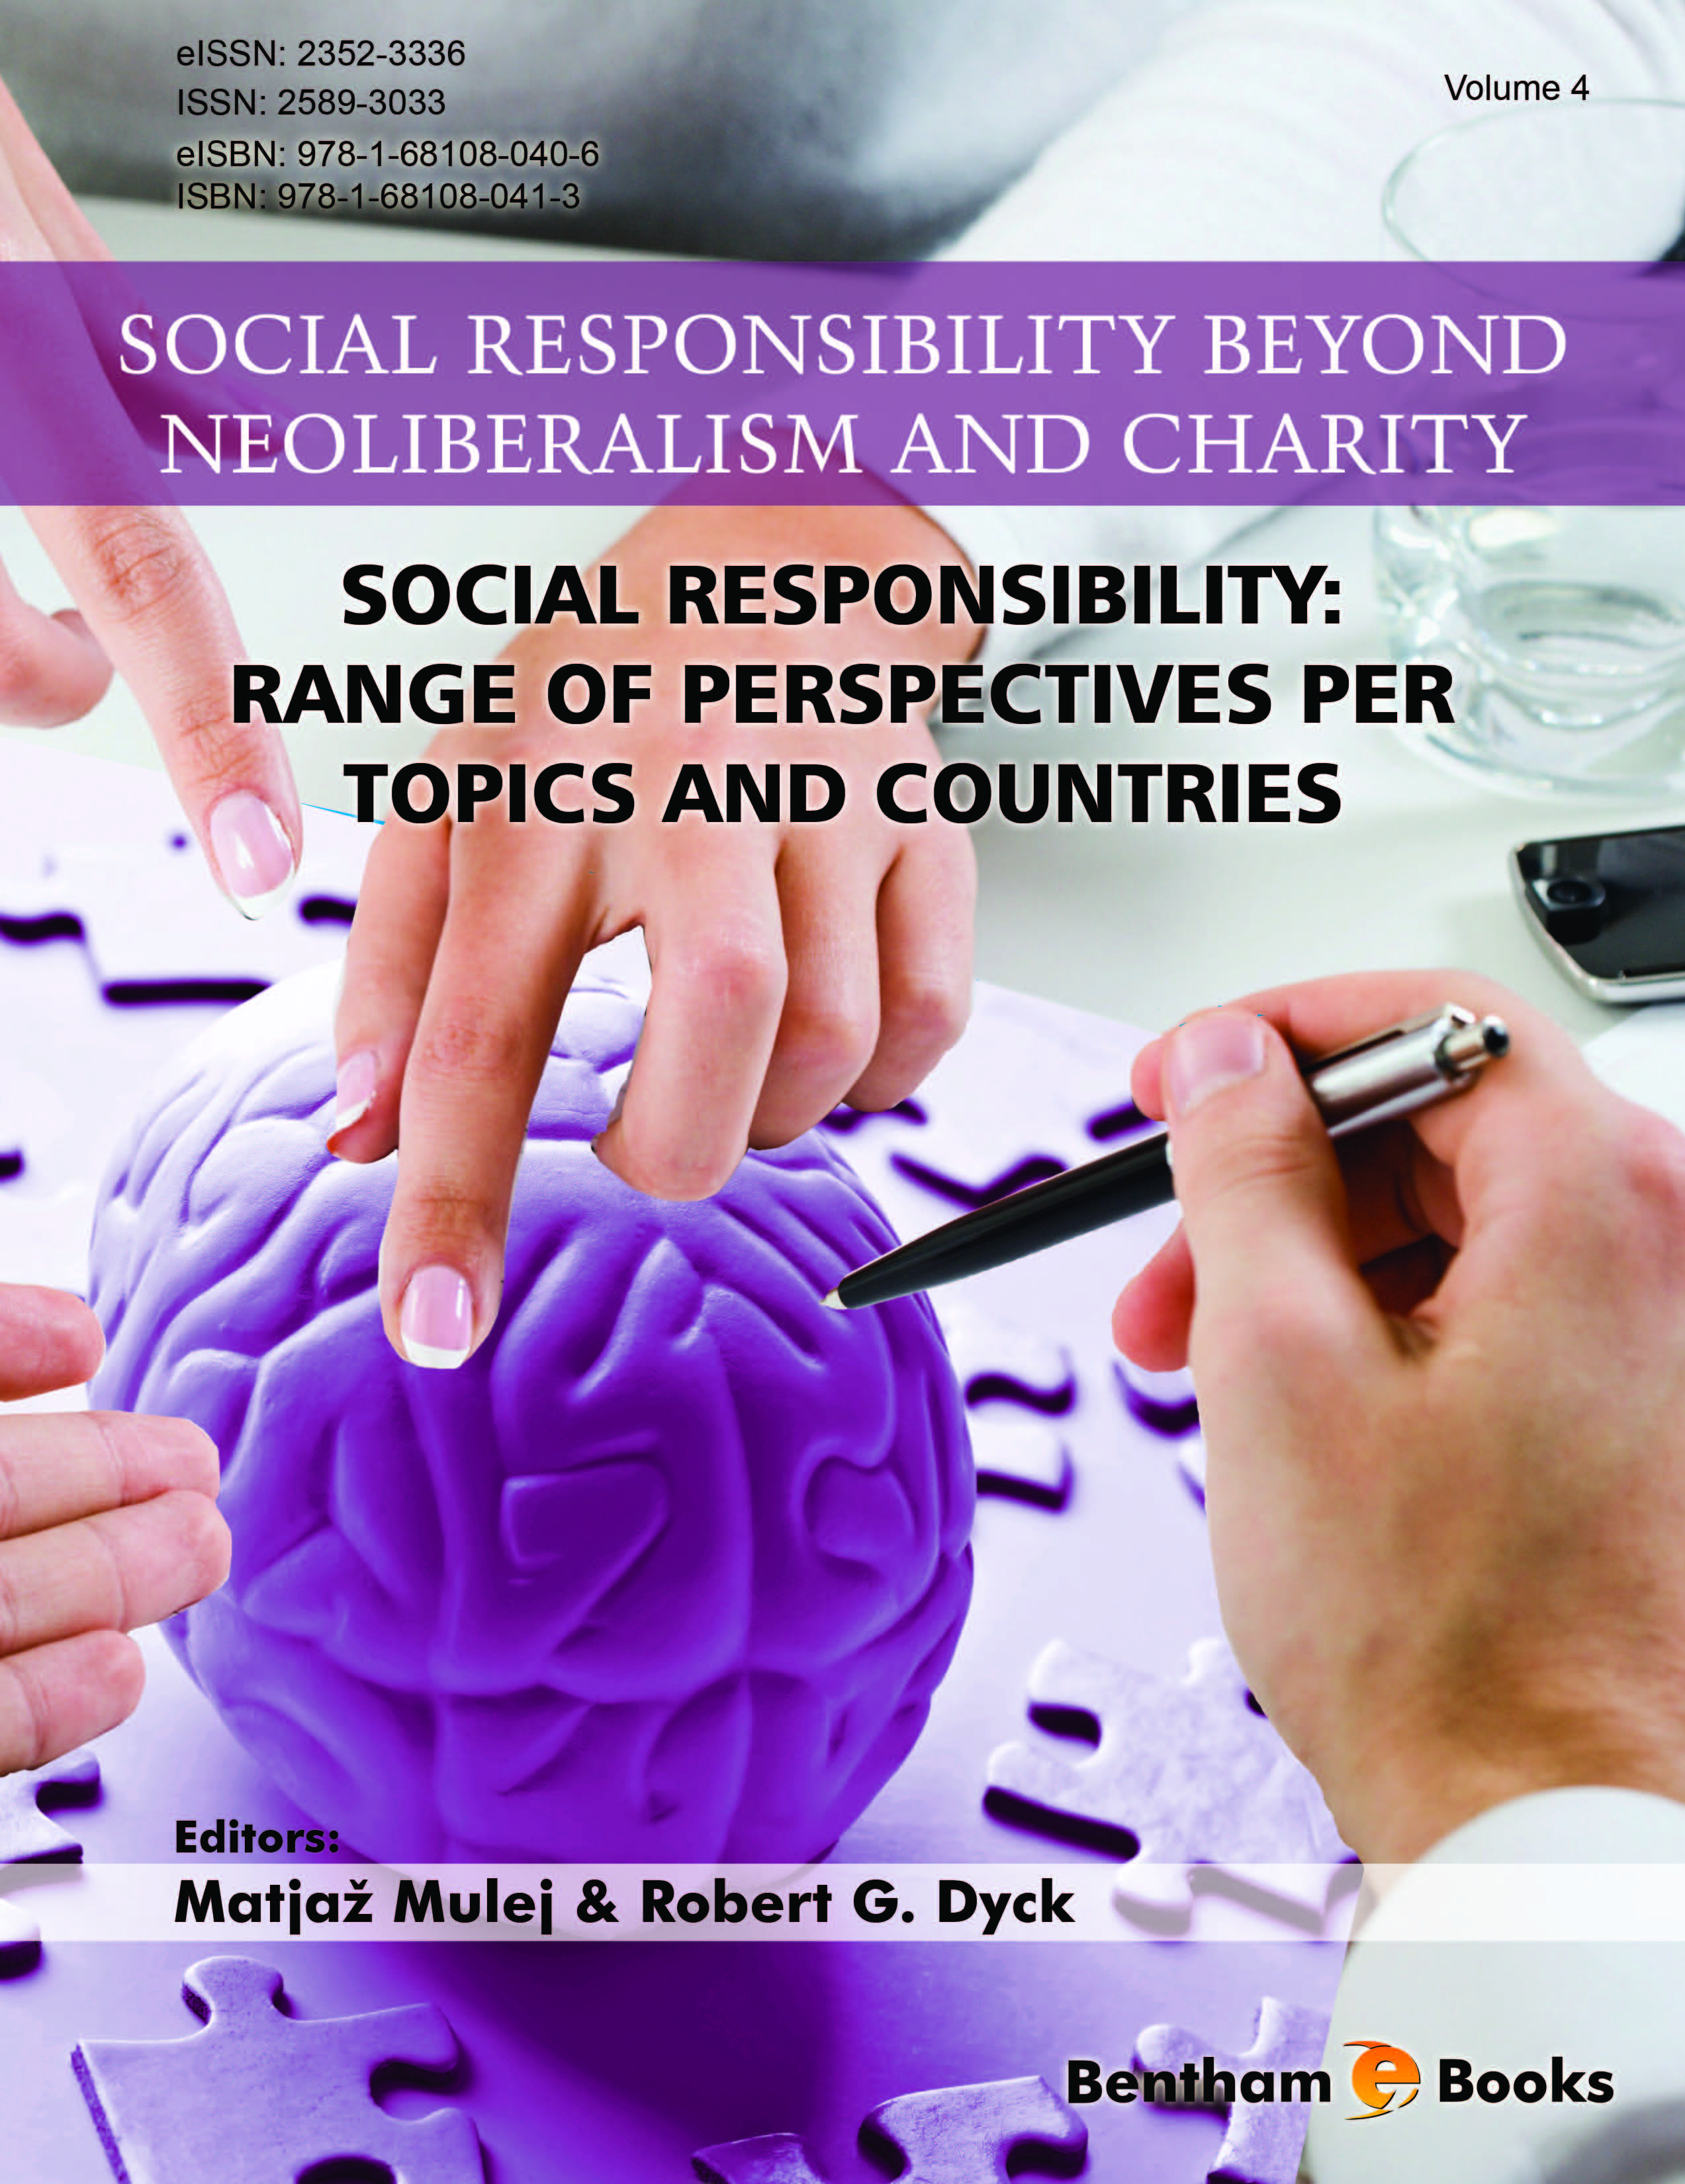 Social Responsibility - Range of Perspectives Per Topics and Countries